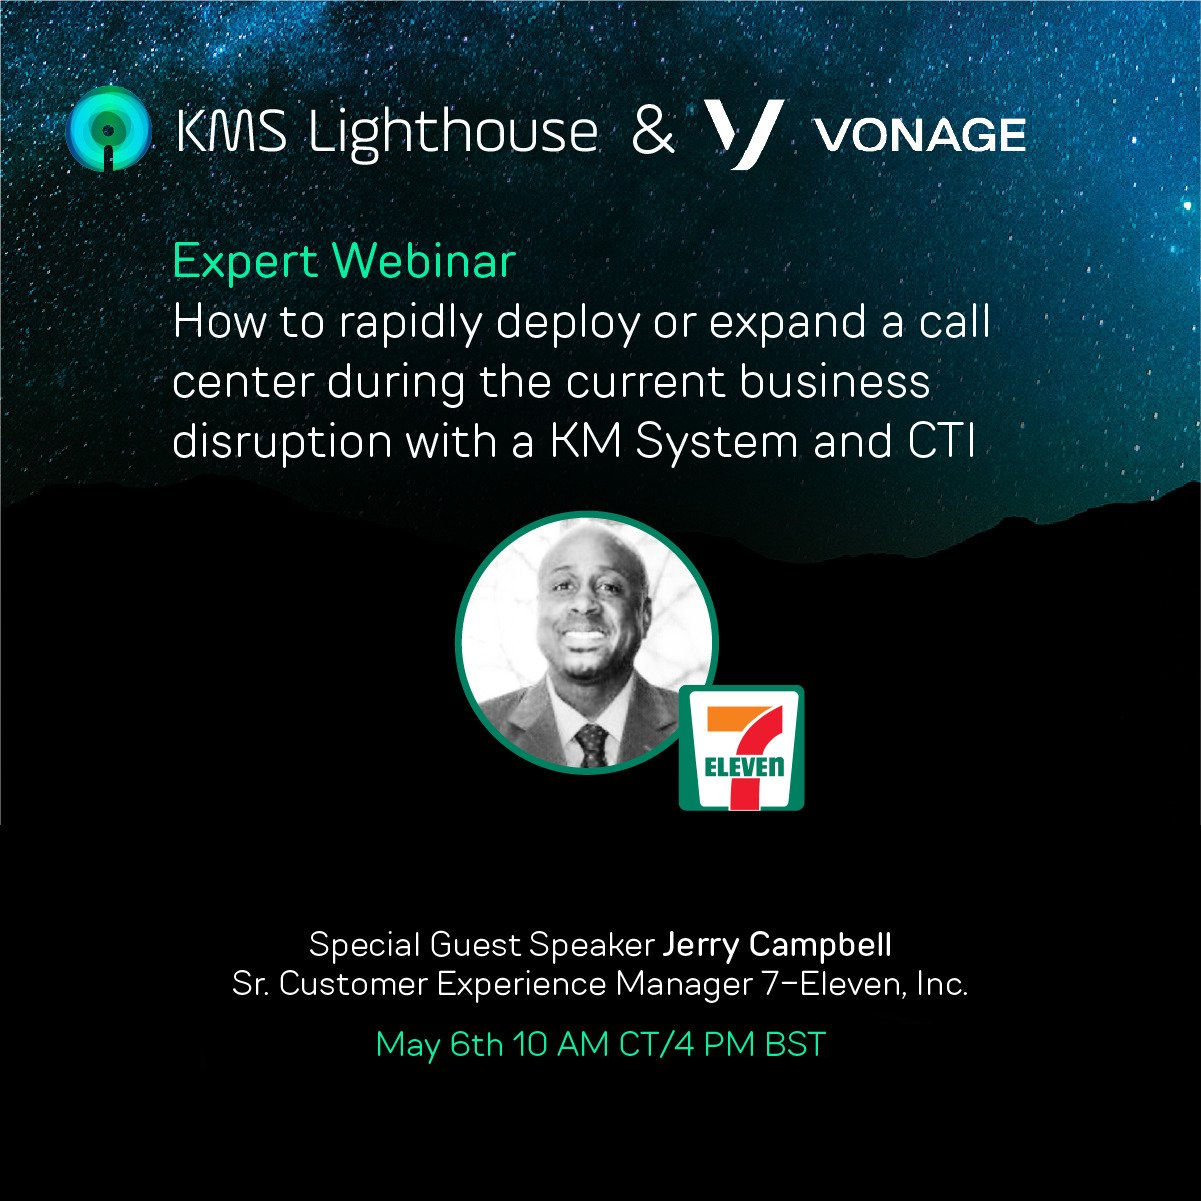 Watch the webinar: How to rapidly deploy or expand a call center during the current business disruption